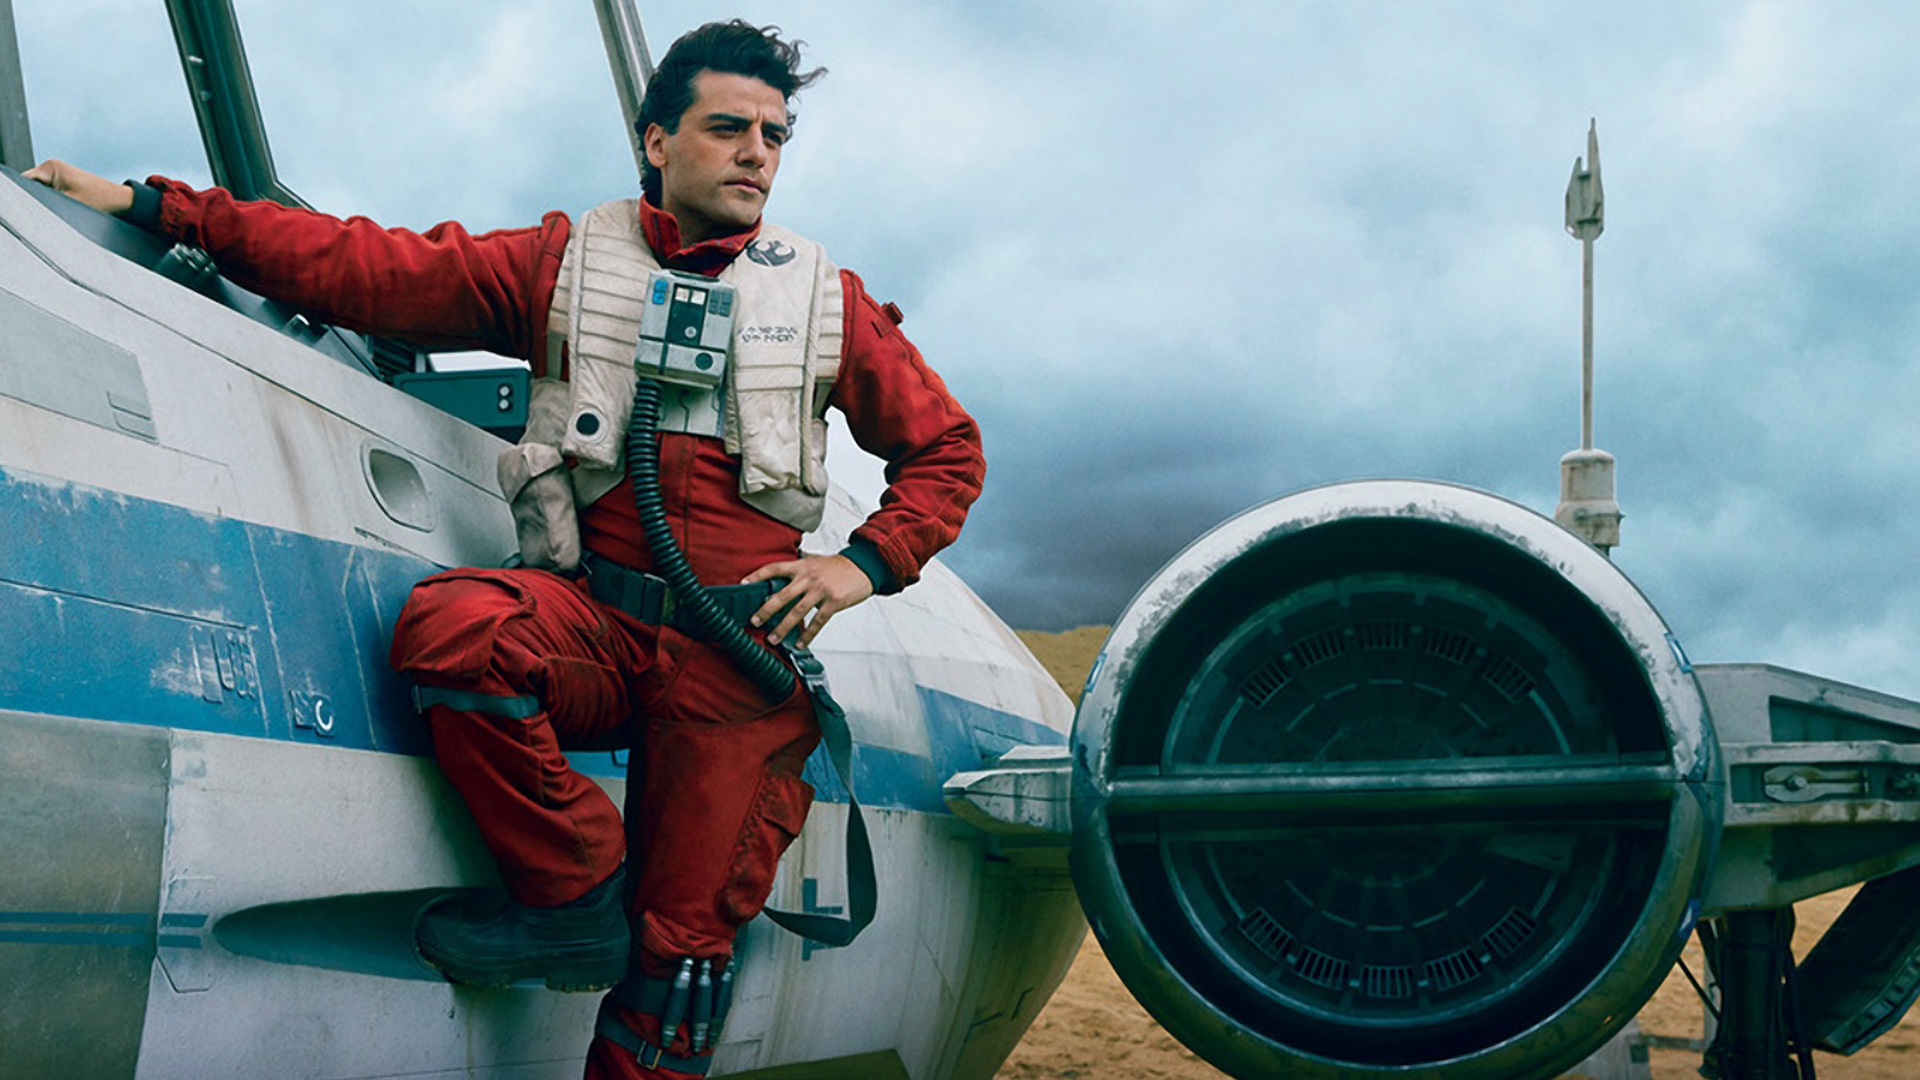 Fans Are Wary of How Poe Dameron's Story Will Unfold on Upcoming 'Star Wars' Novel